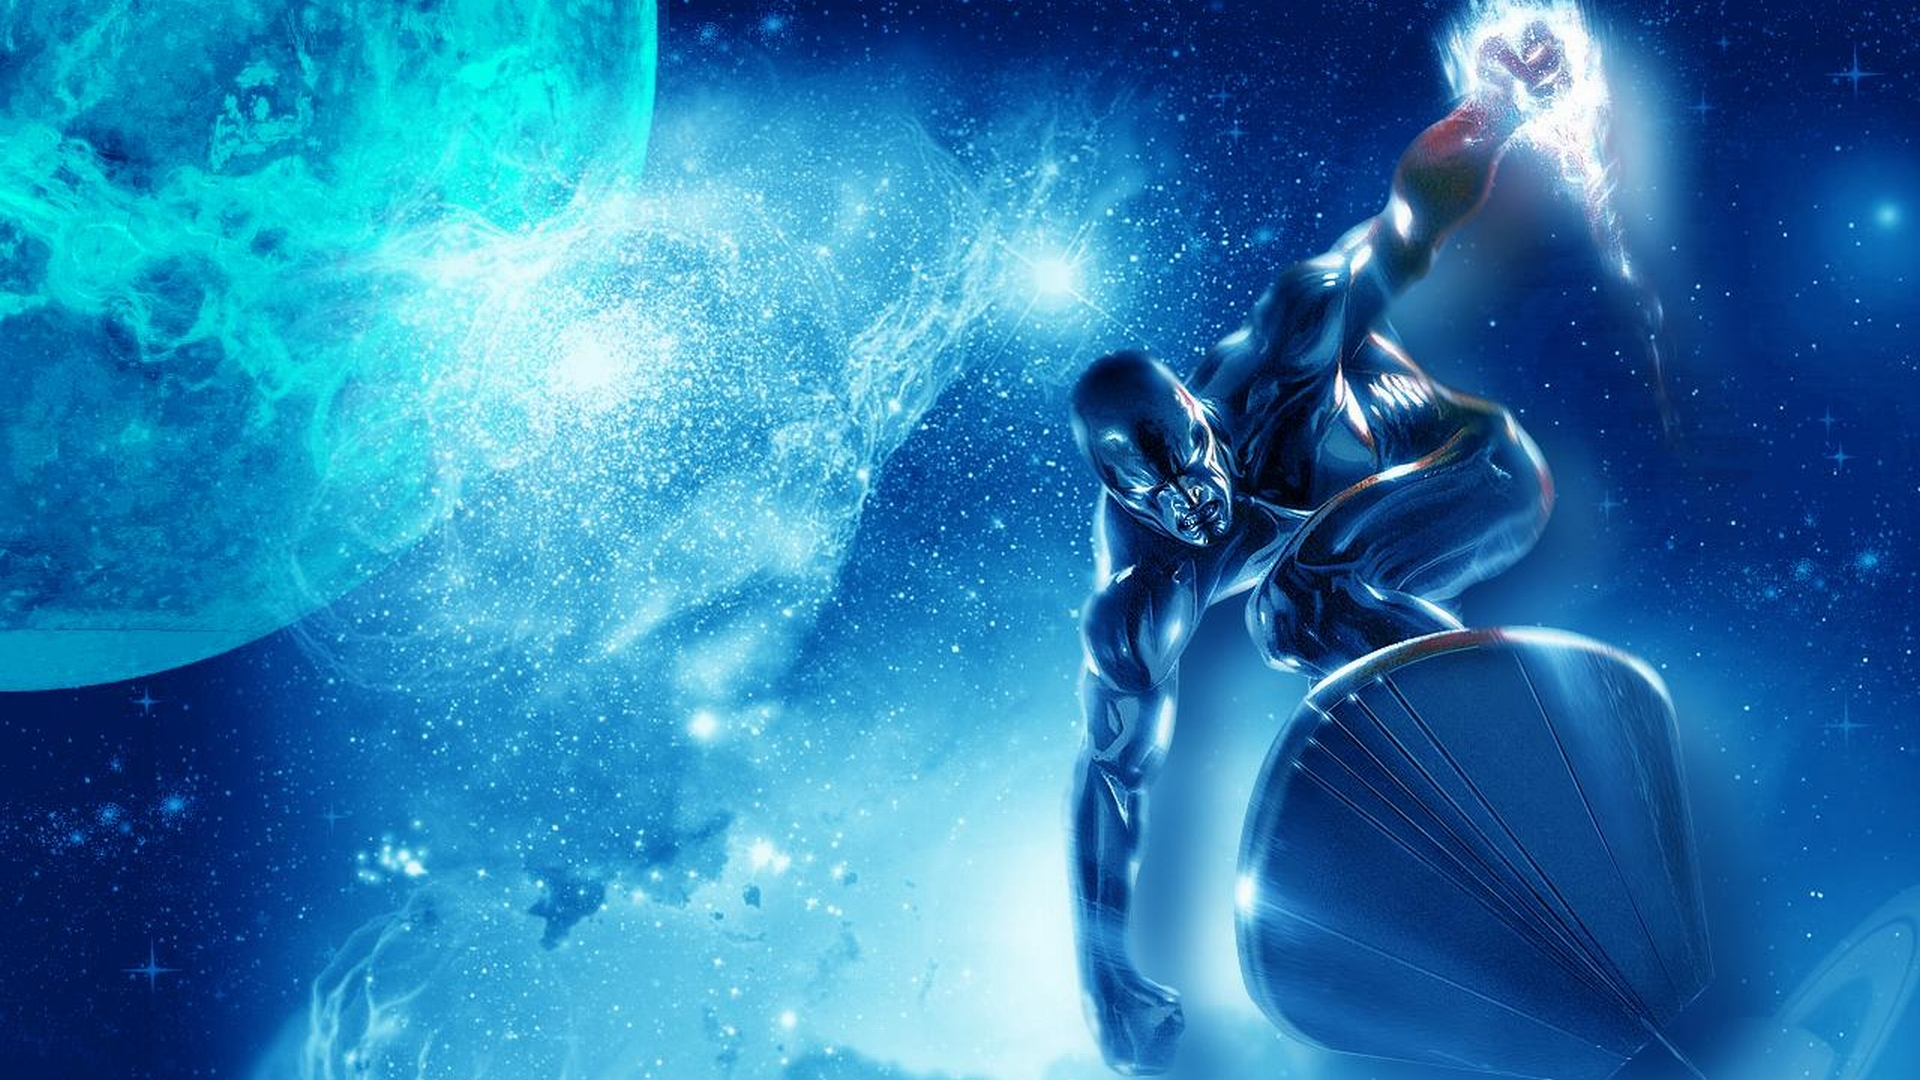 70 Silver Surfer HD Wallpapers Backgrounds 1920x1080